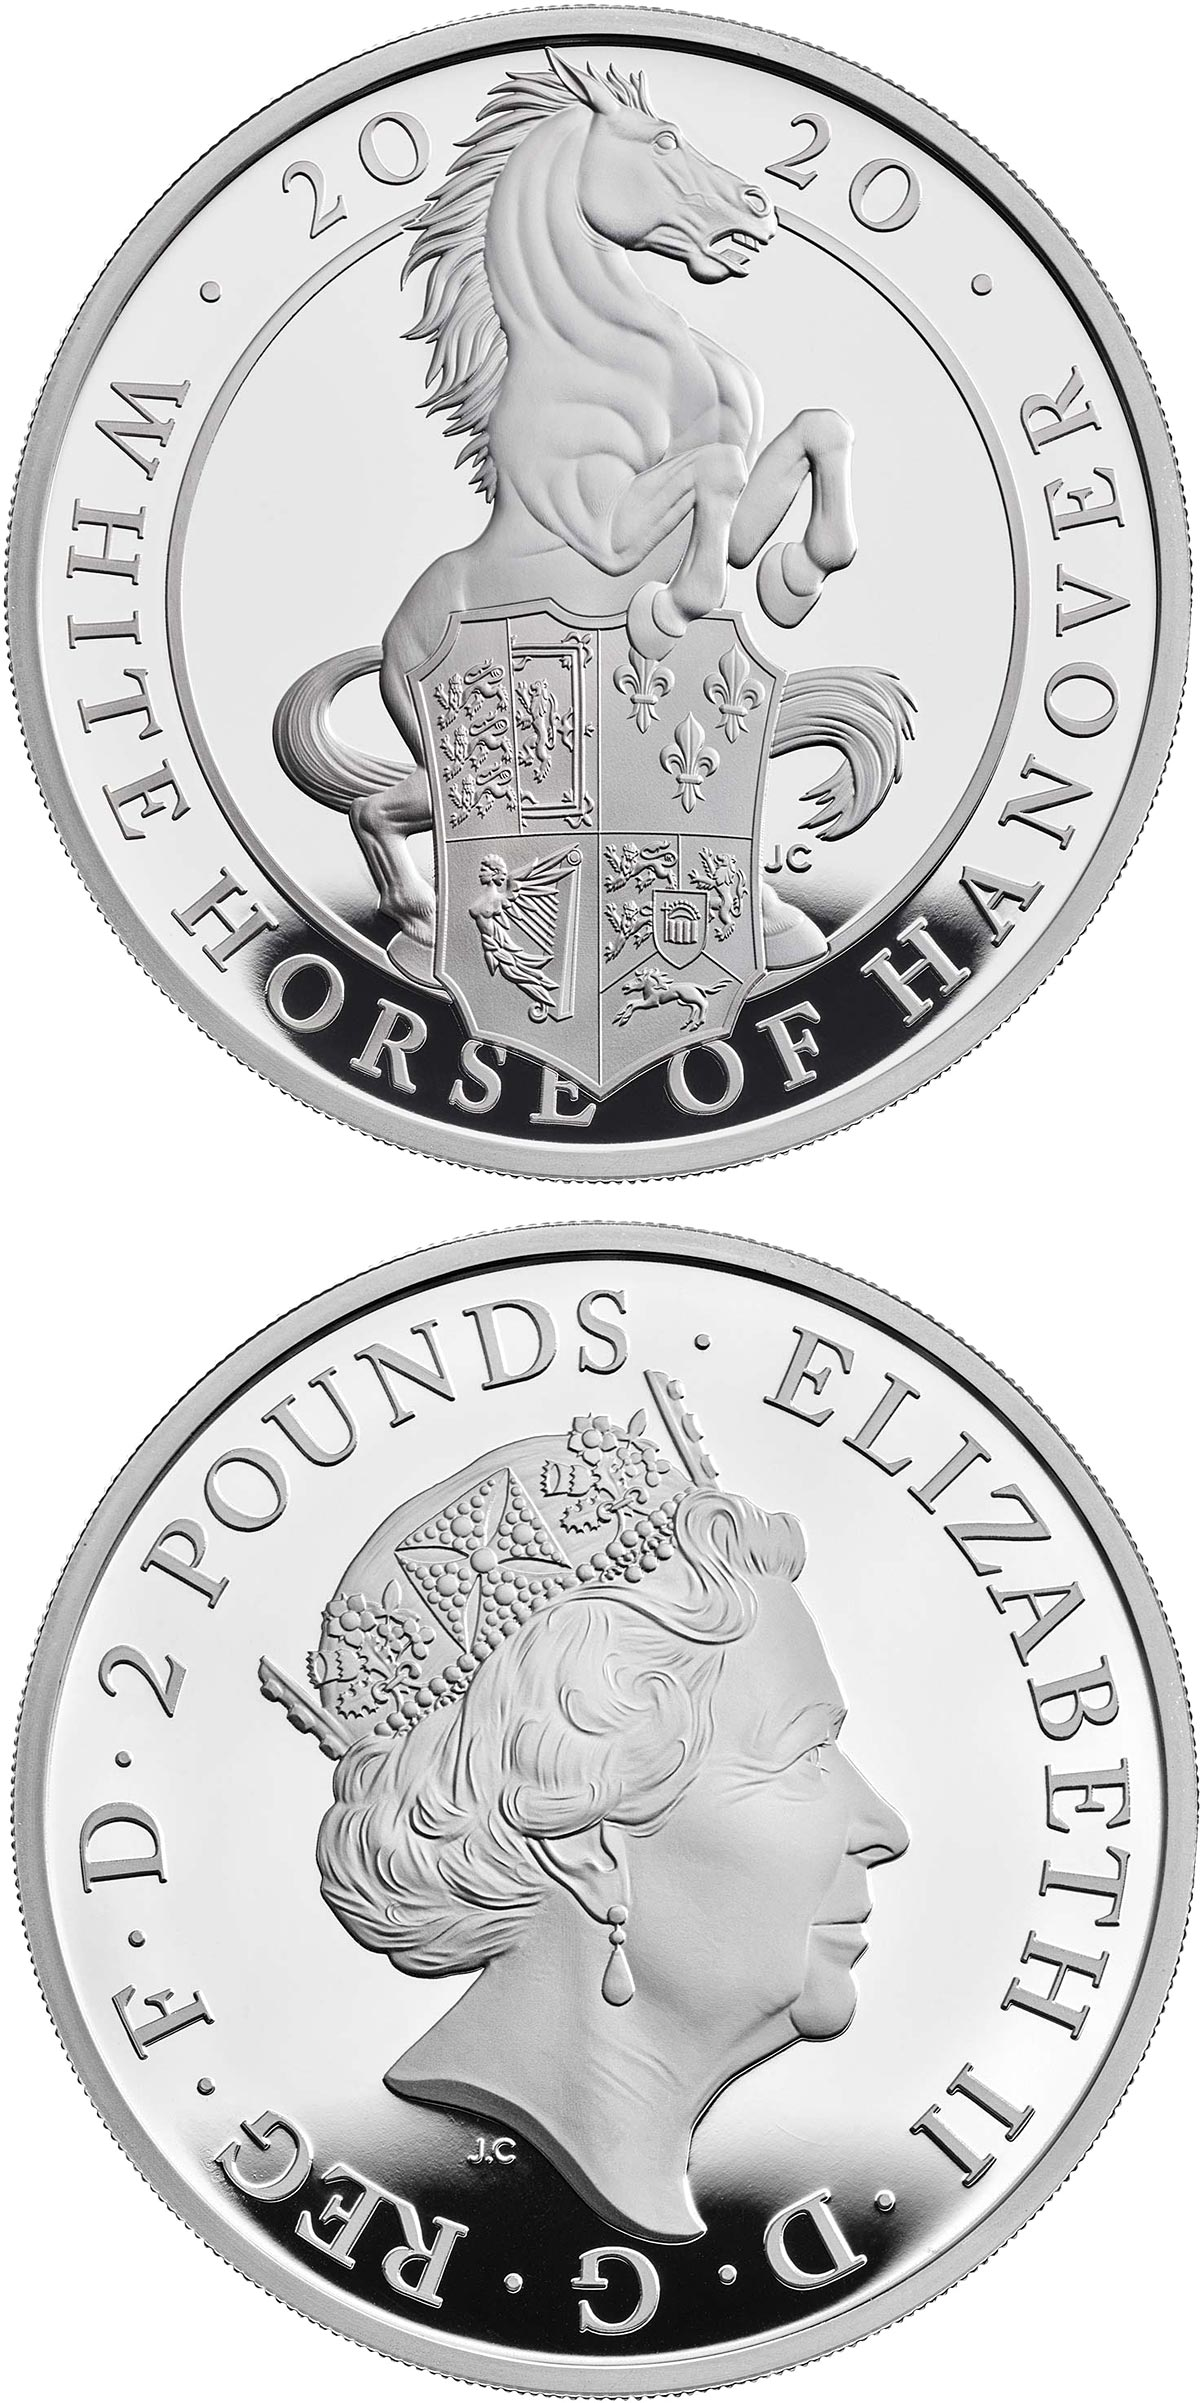 Image of 2 pounds coin - The White Horse of Hanover  | United Kingdom 2020.  The Silver coin is of Proof quality.